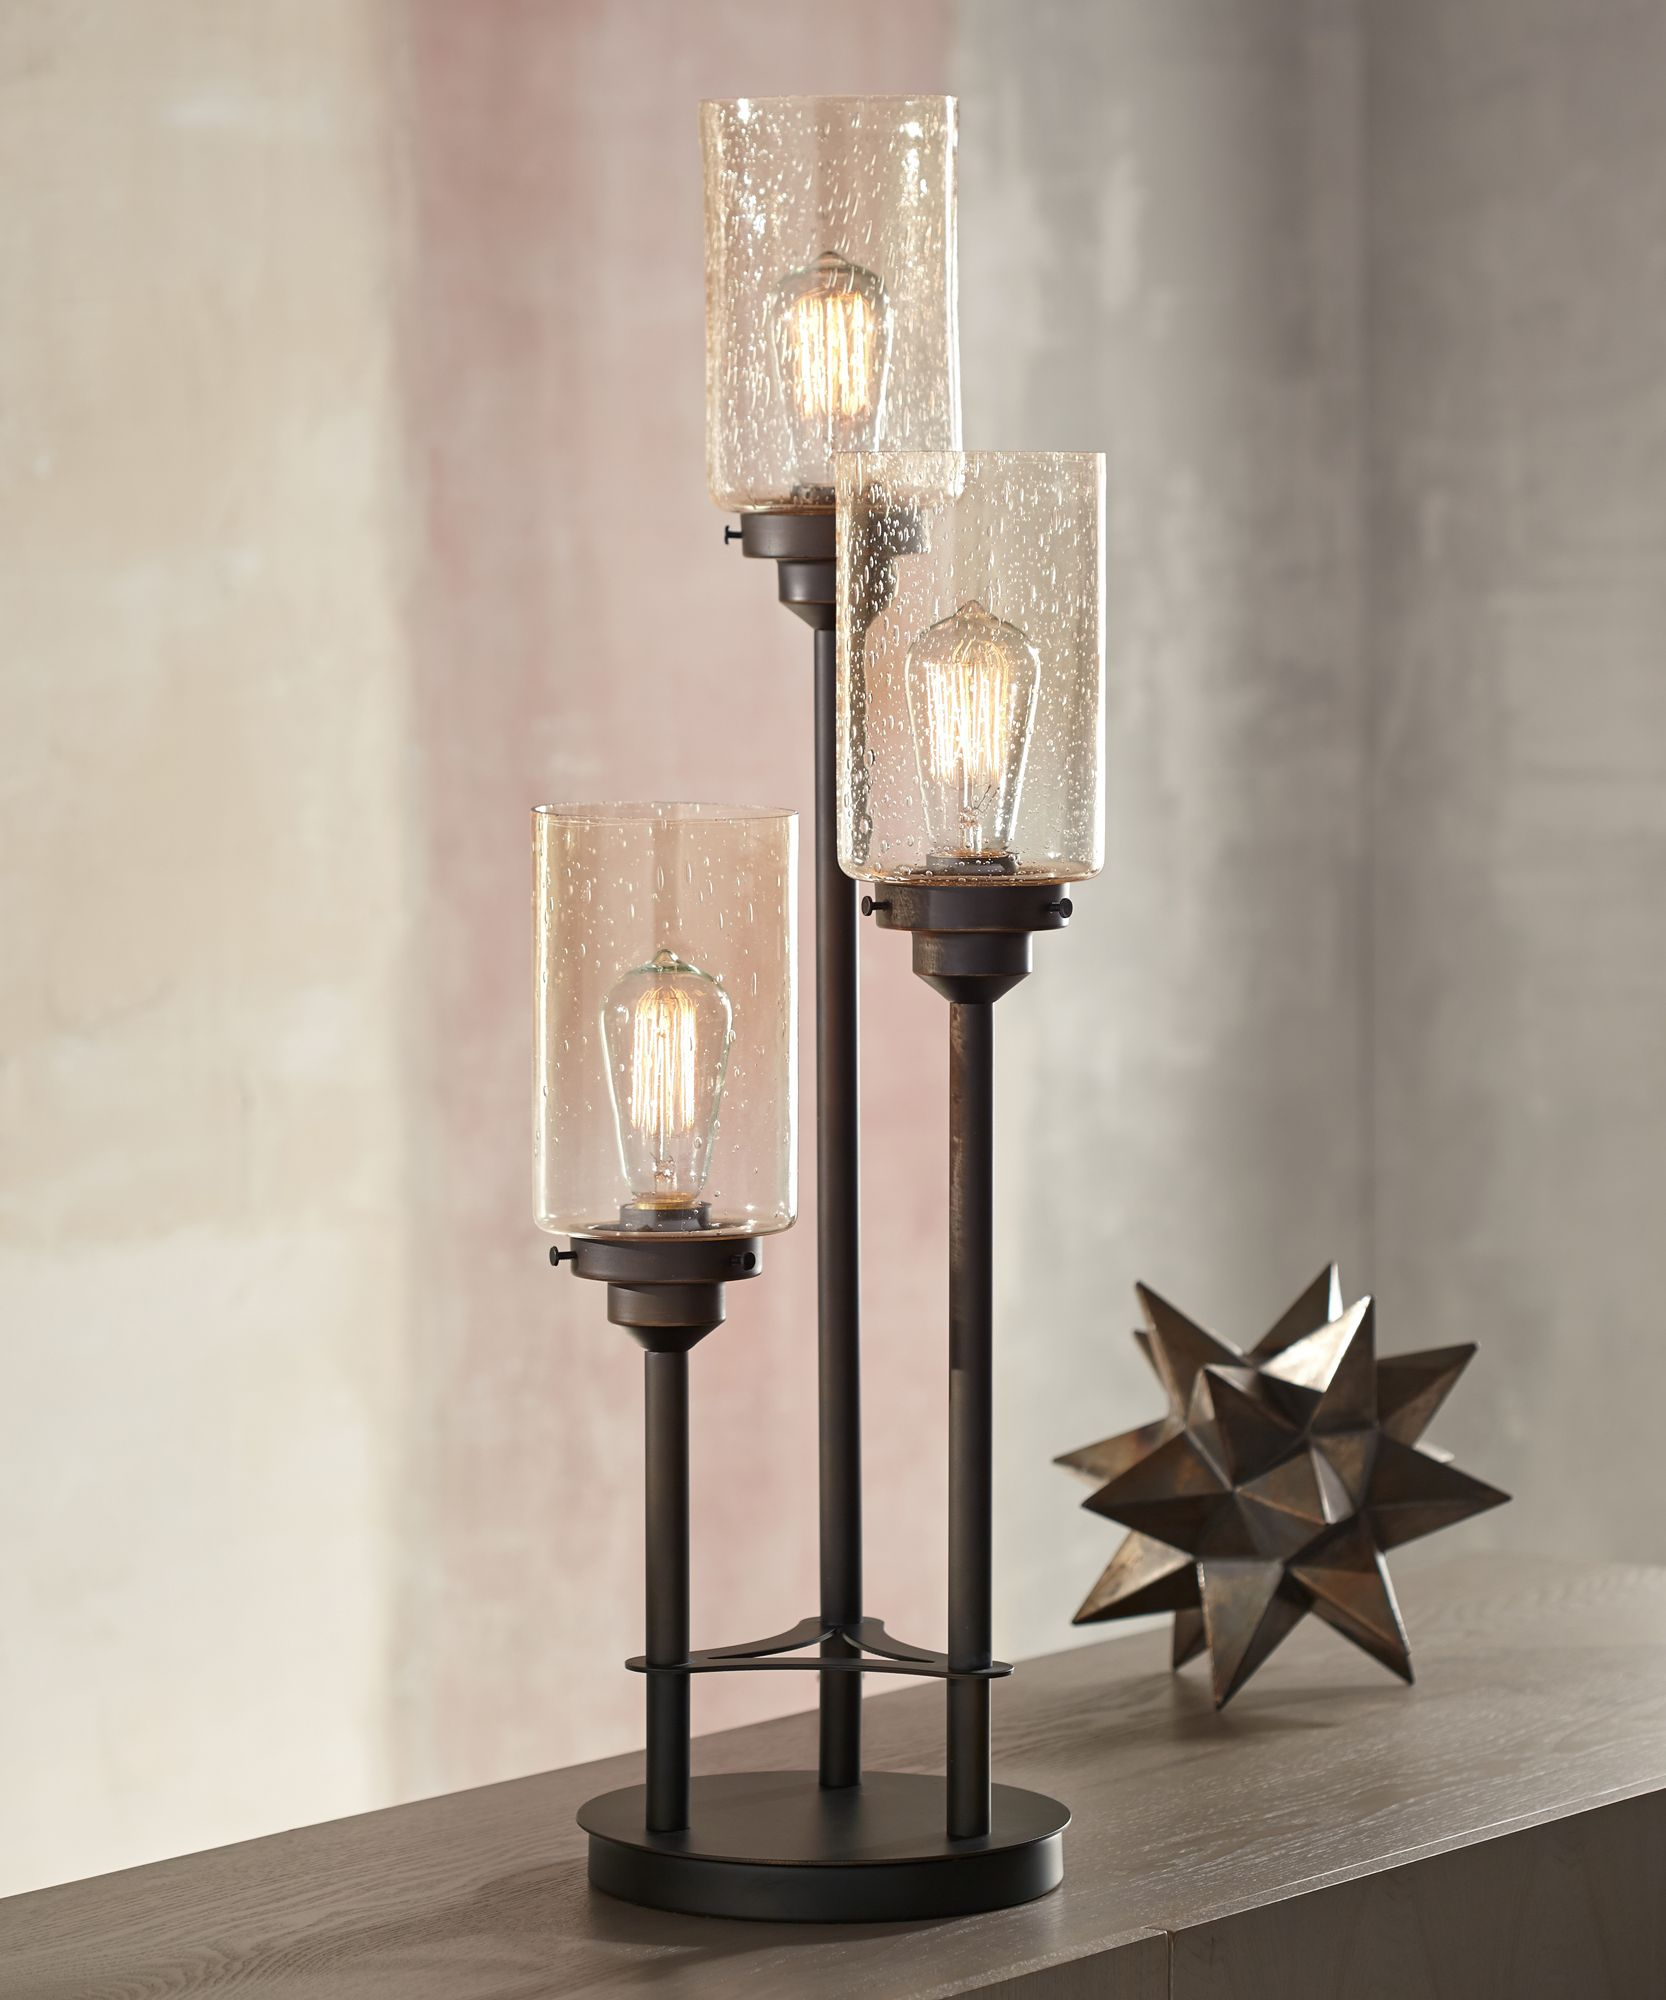 Beau Libby 3 Light Industrial Console Lamp With Edison Bulbs